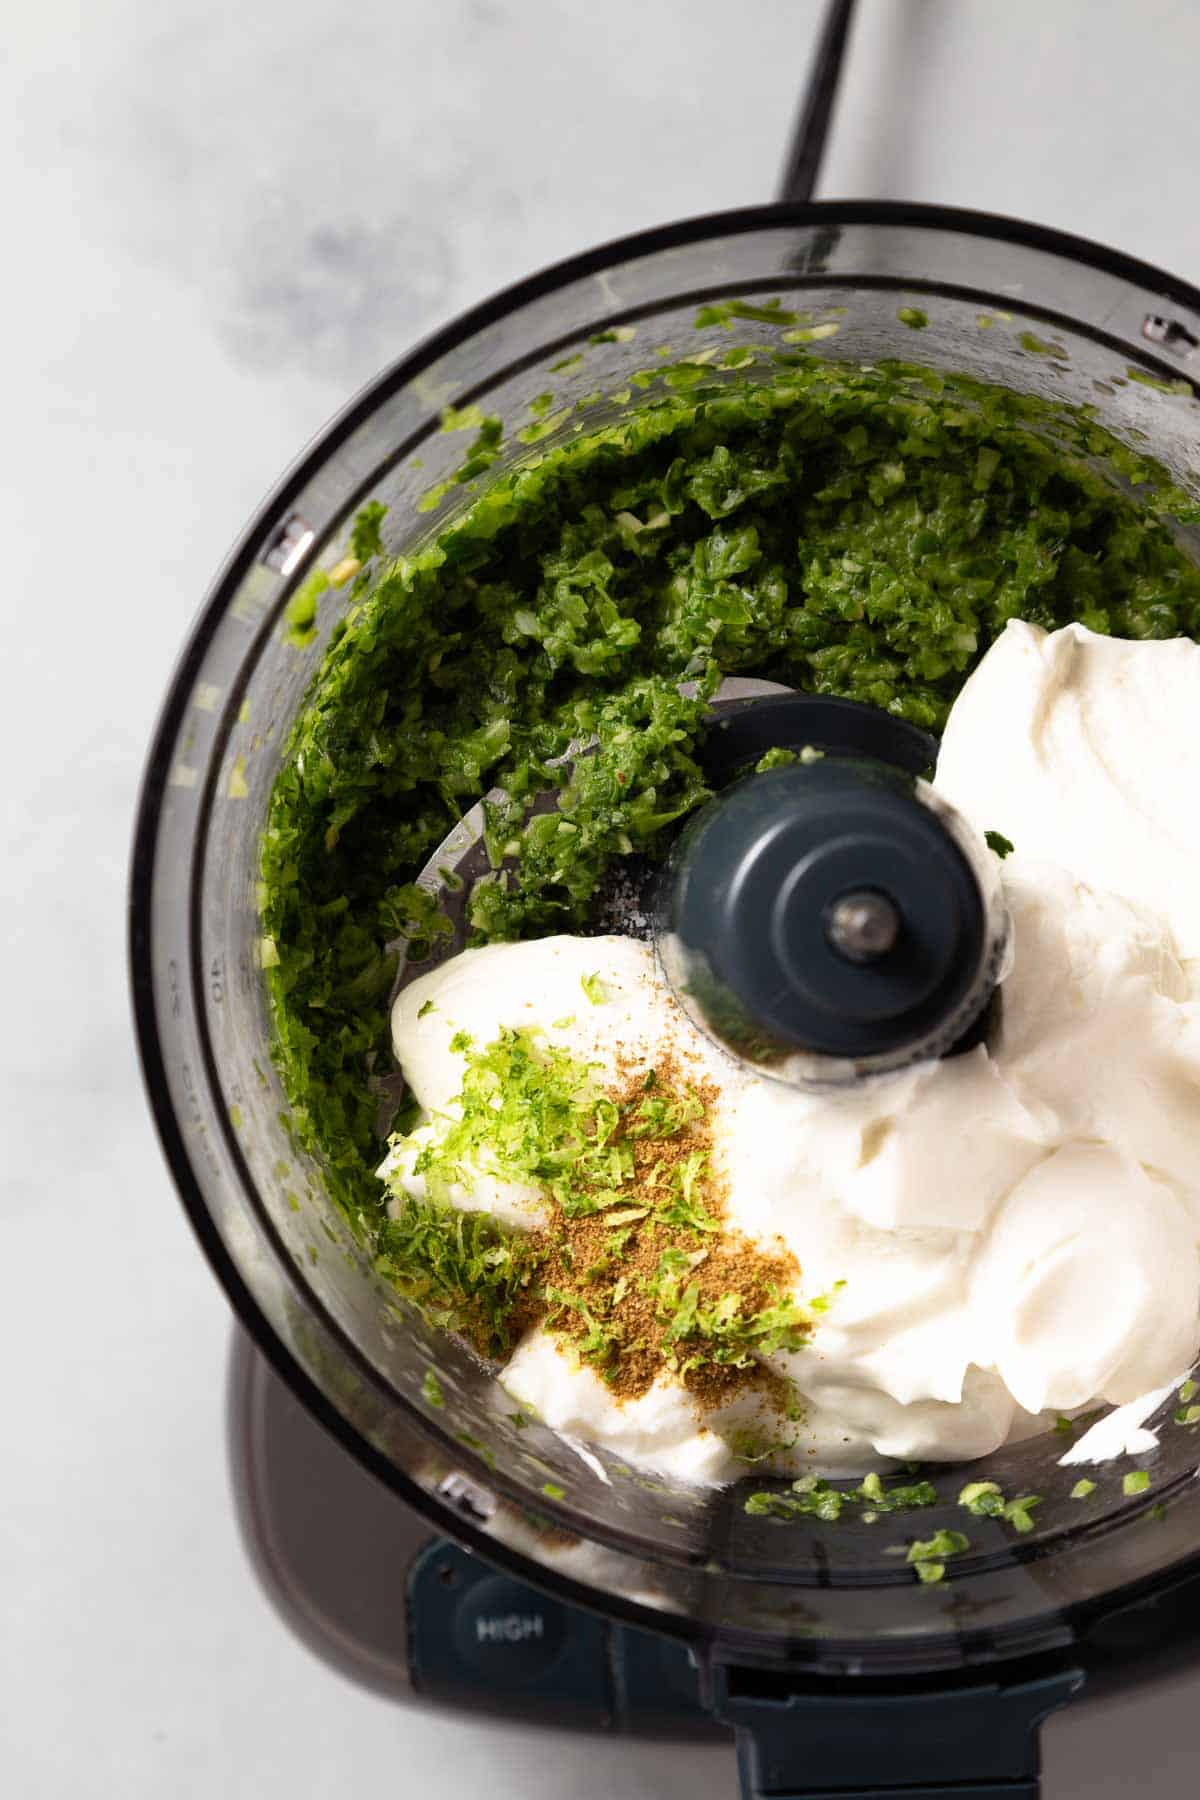 blended jalapenos and cilantro with seasonings and greek yogurt in a food processor